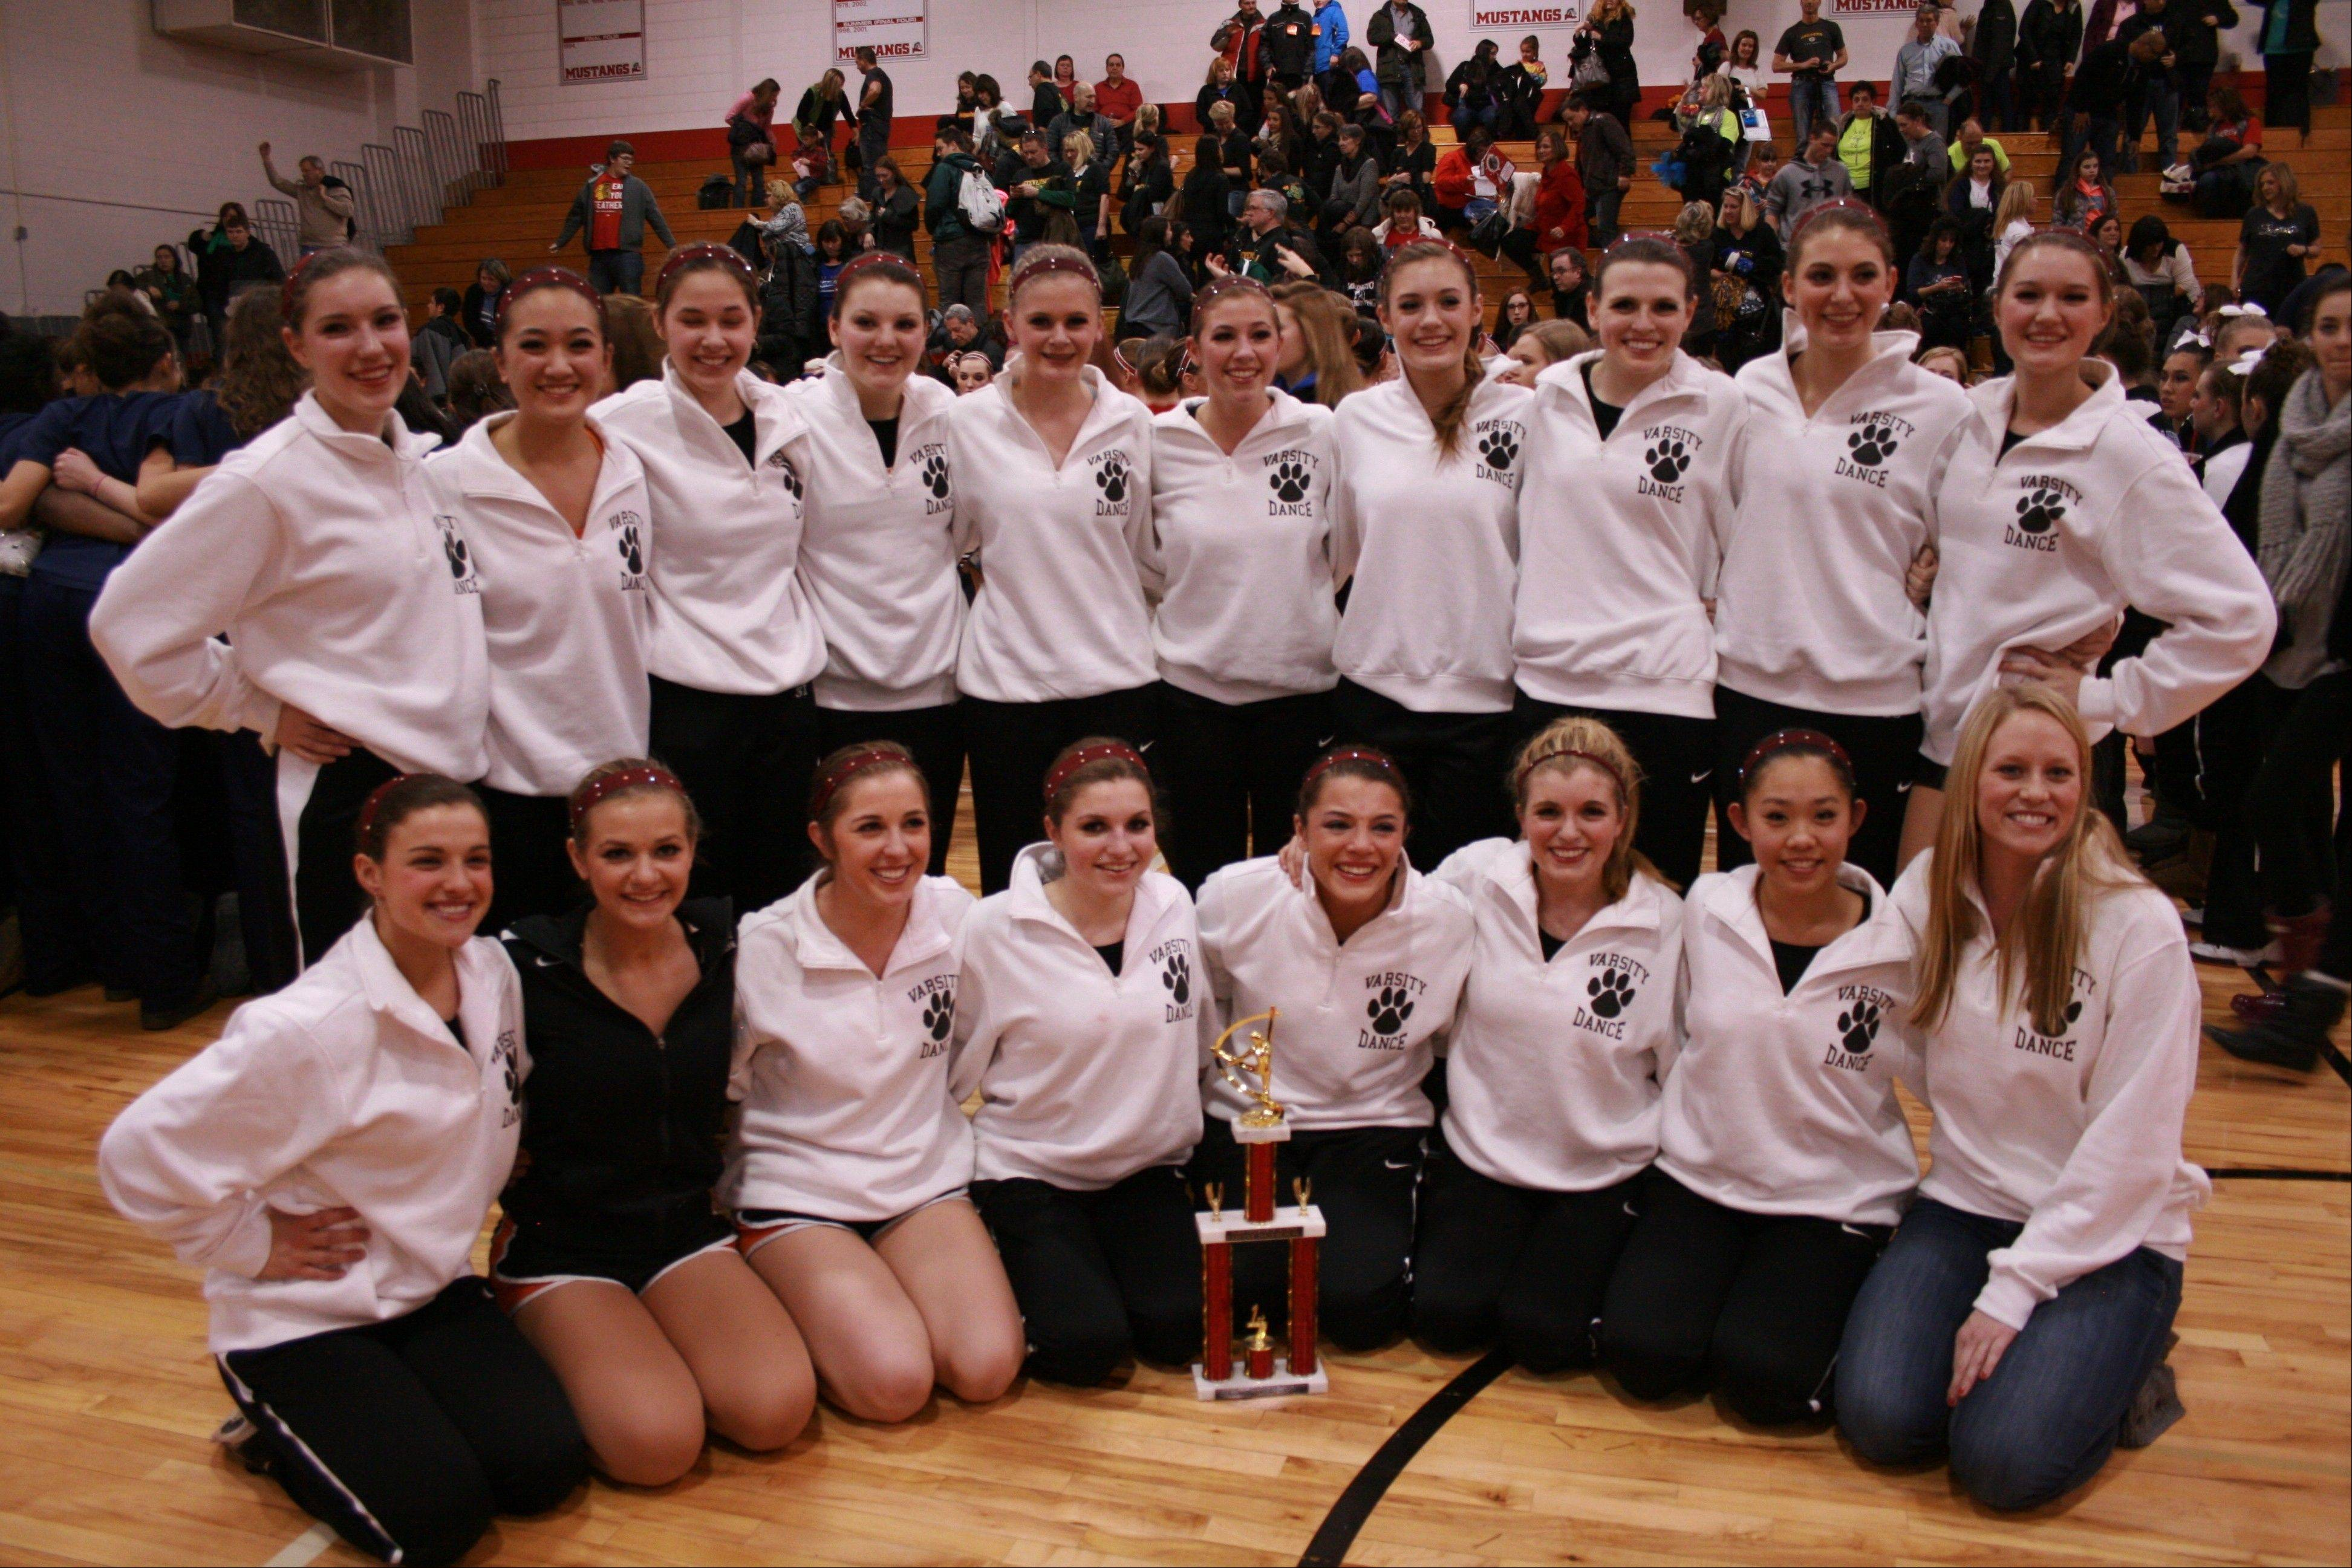 The Libertyville High School Varsity Dance Team took first place in their with their jazz routine in their division at the Mundelein Invitational and third place with their poms routine in the North Suburban Conference's first dance competition.